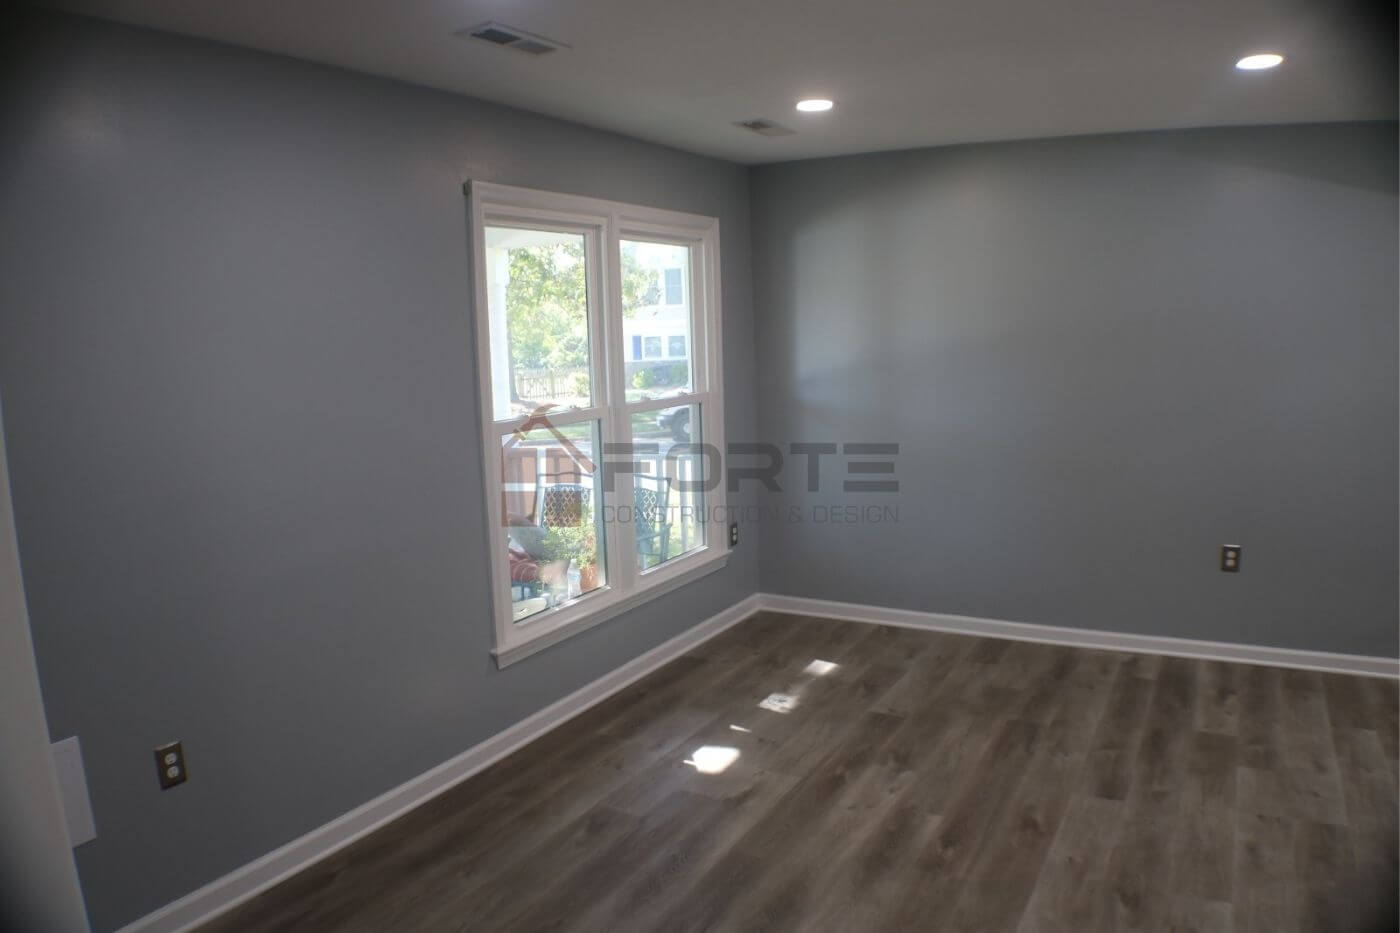 Home Remodeling in Herndon